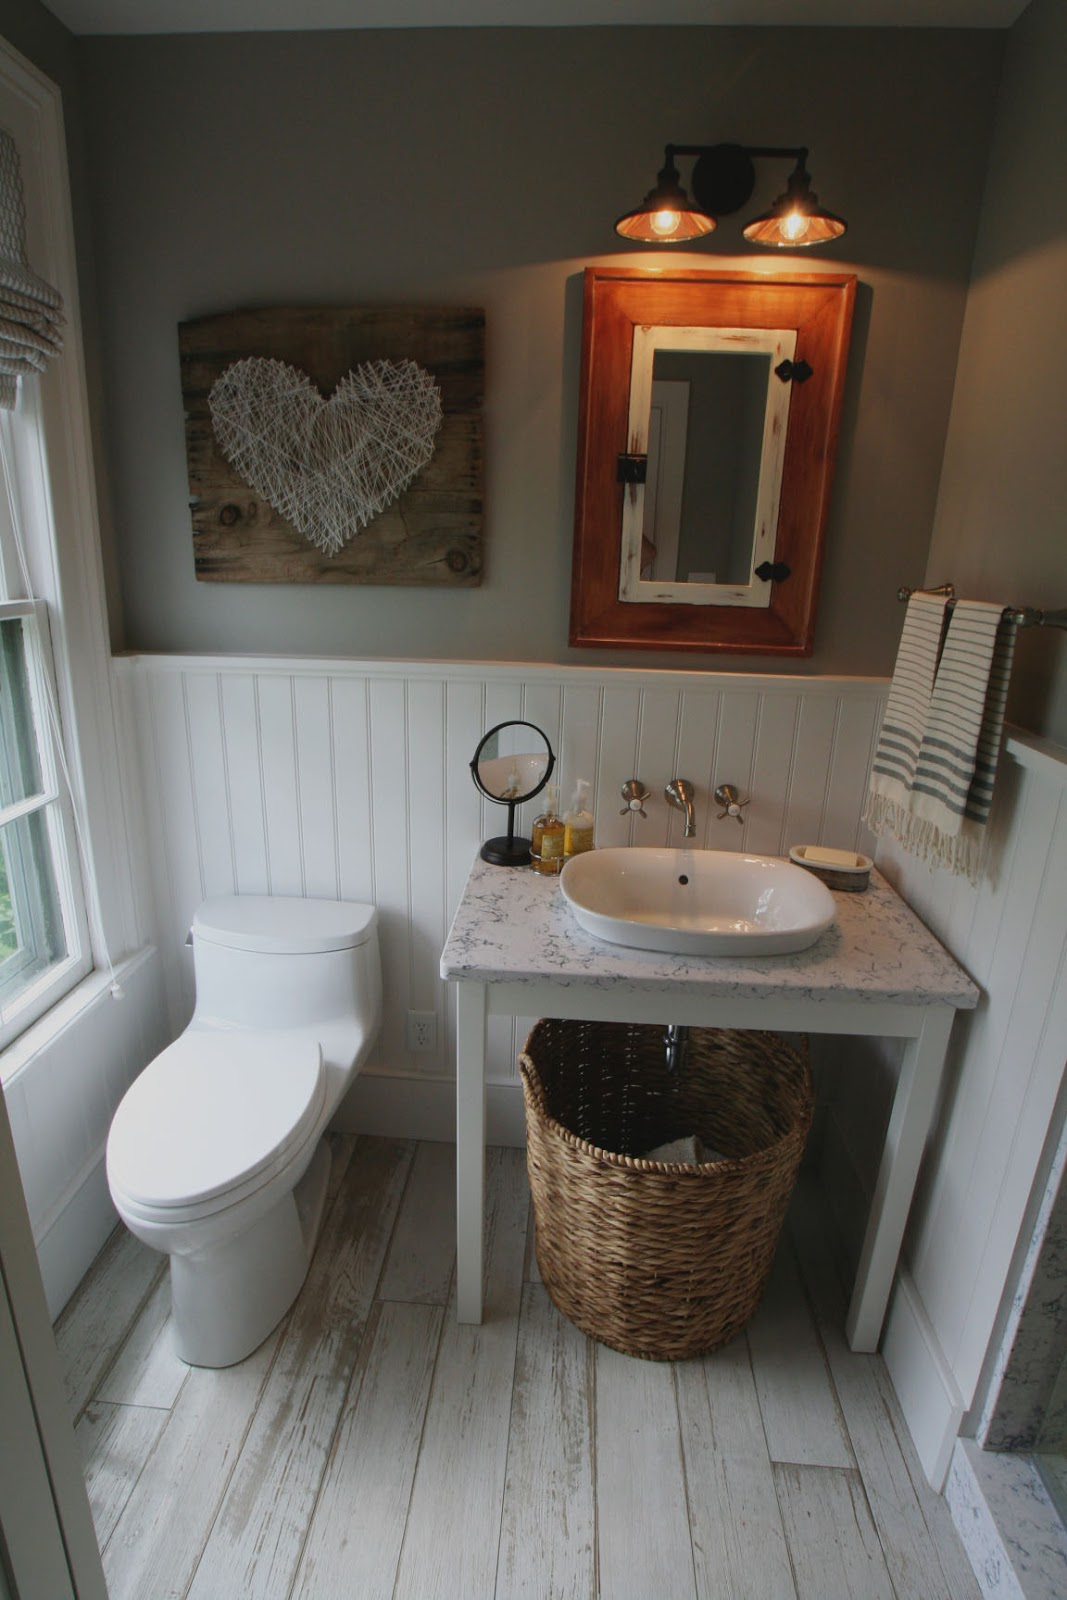 blog franklin and associates design build remodel and renovate rh franklinandassociates blogspot com